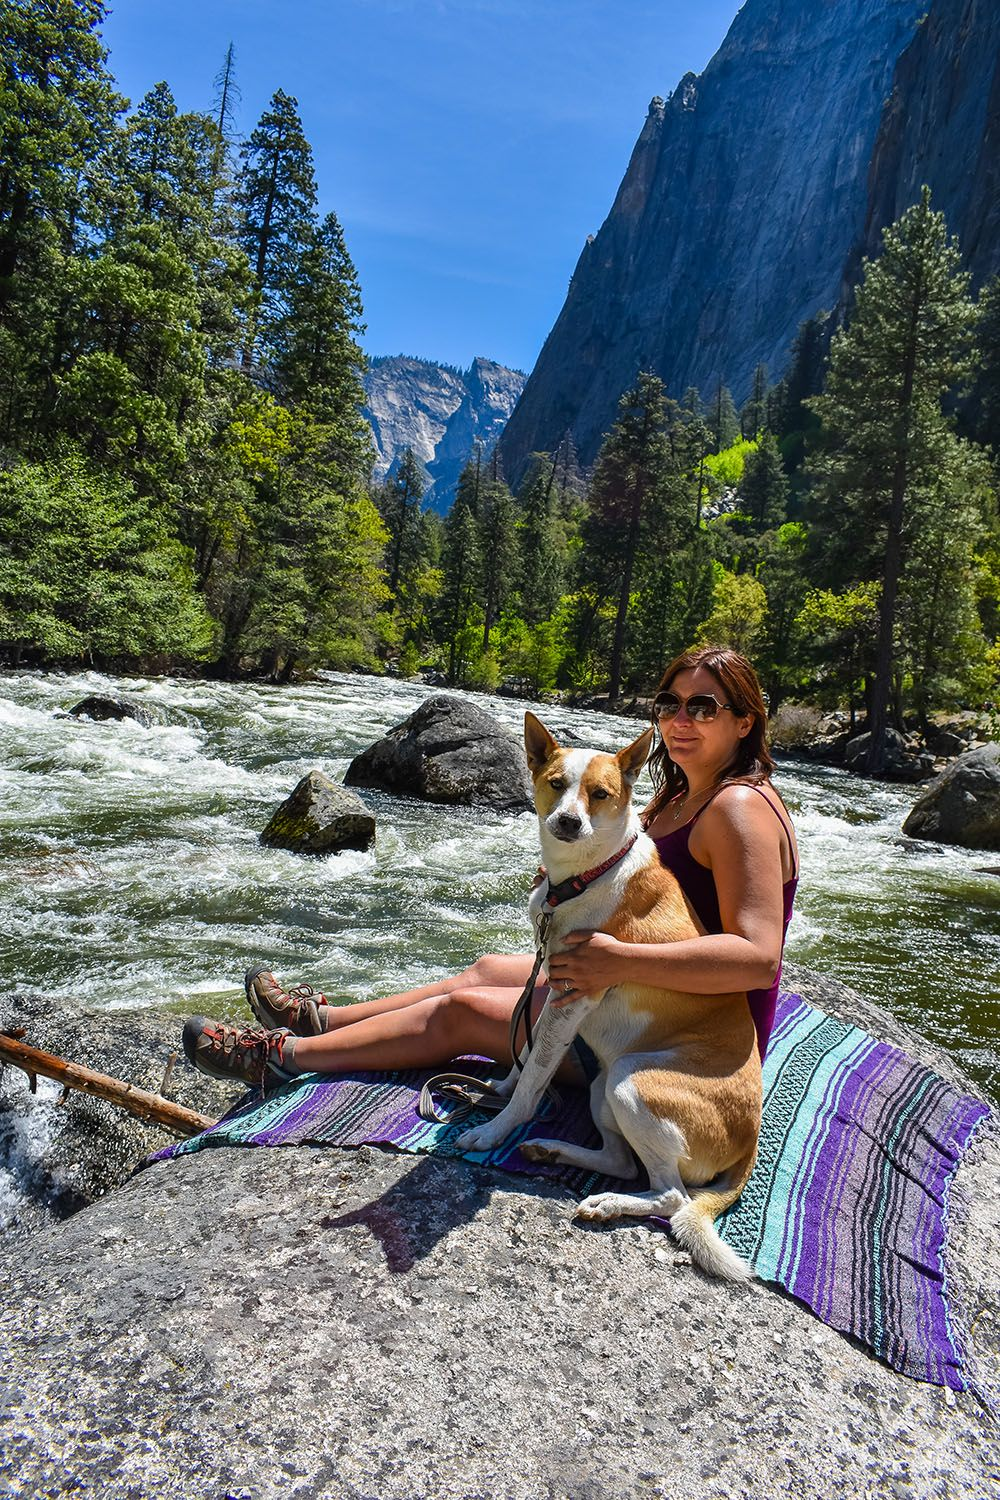 Hanging with my best friend in yosemite national park by